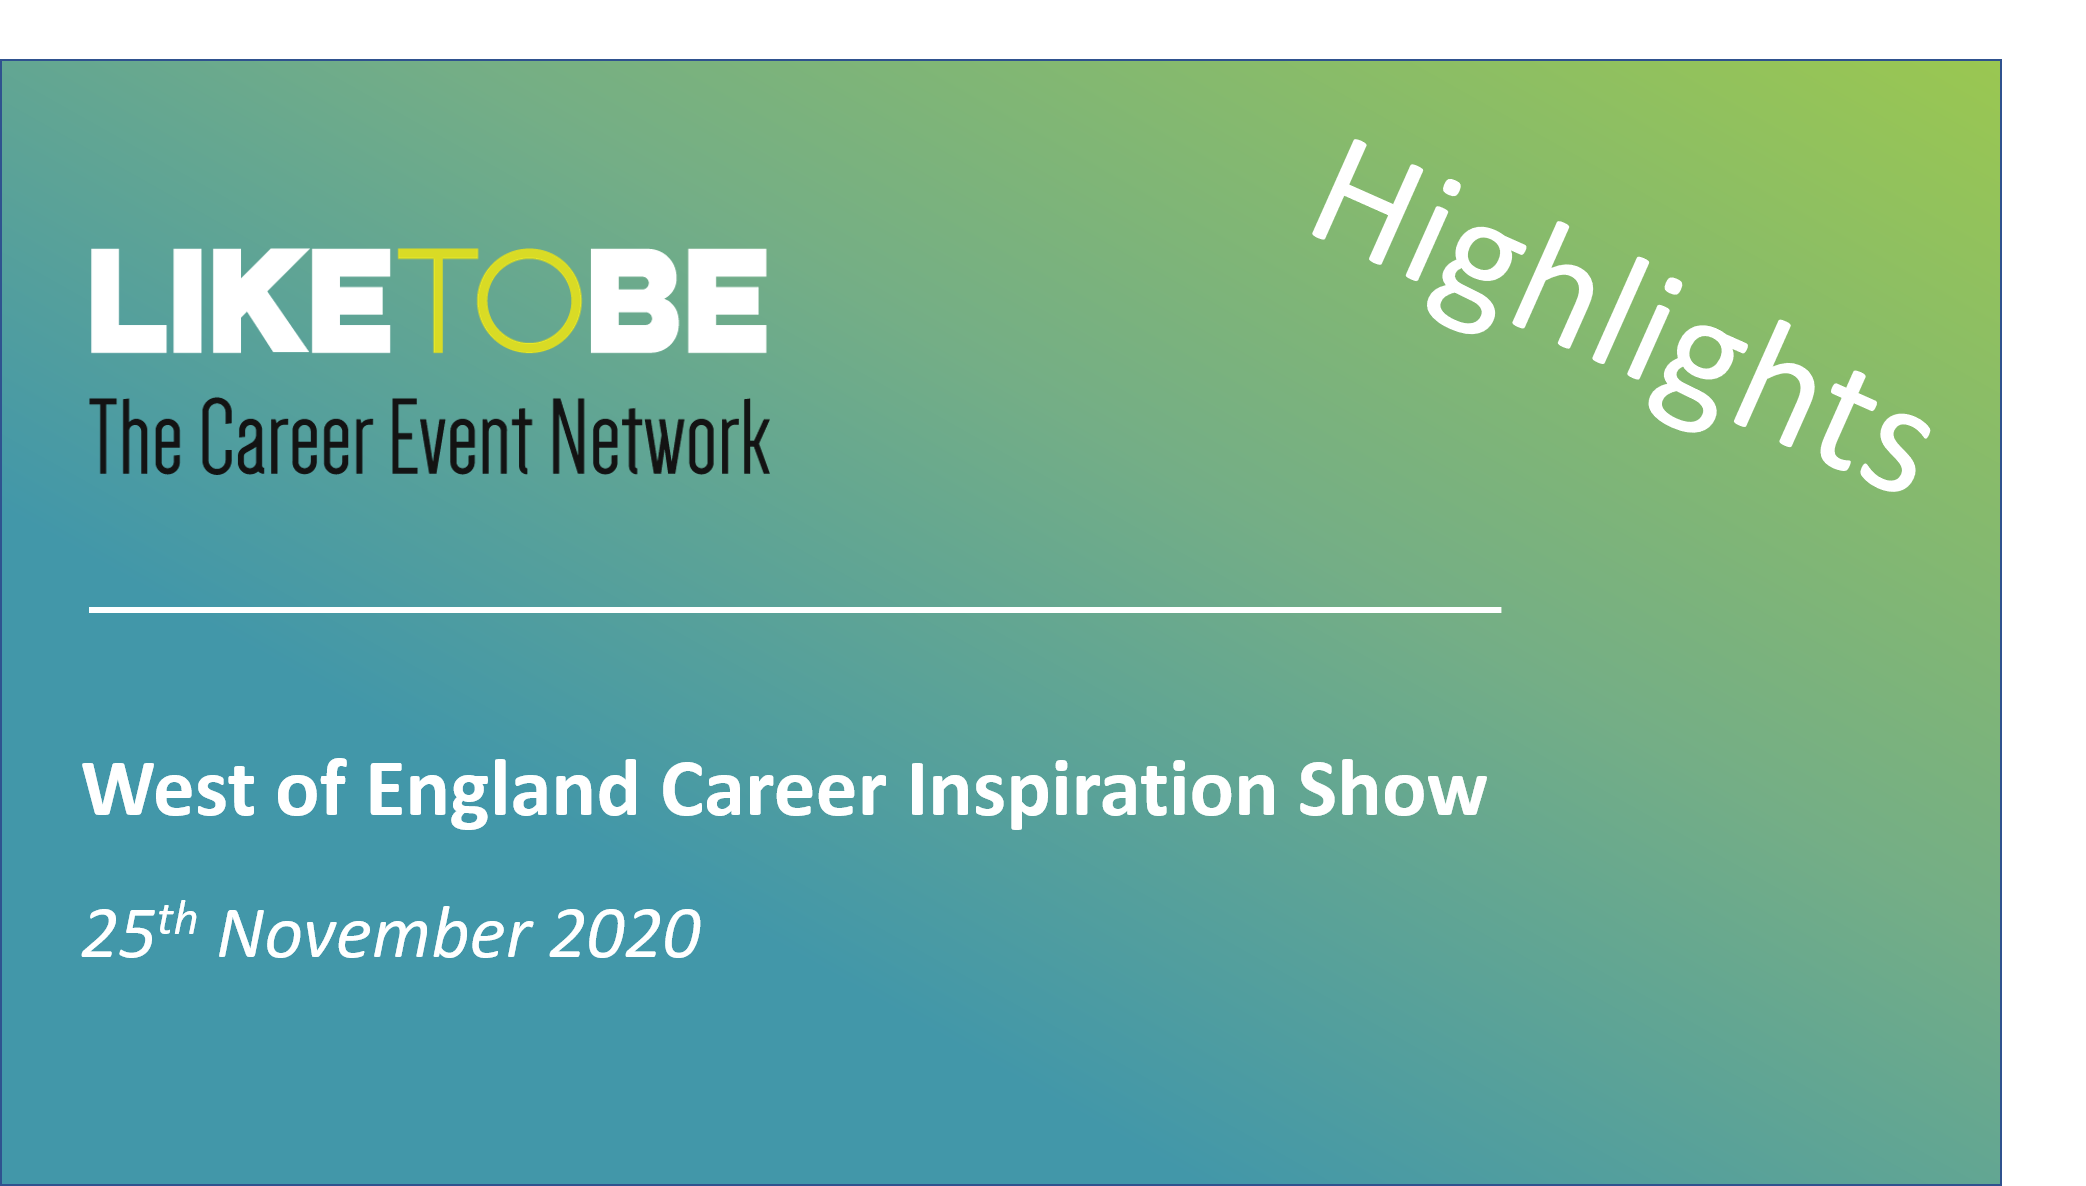 Highlights - West of England Career Inspiration Show